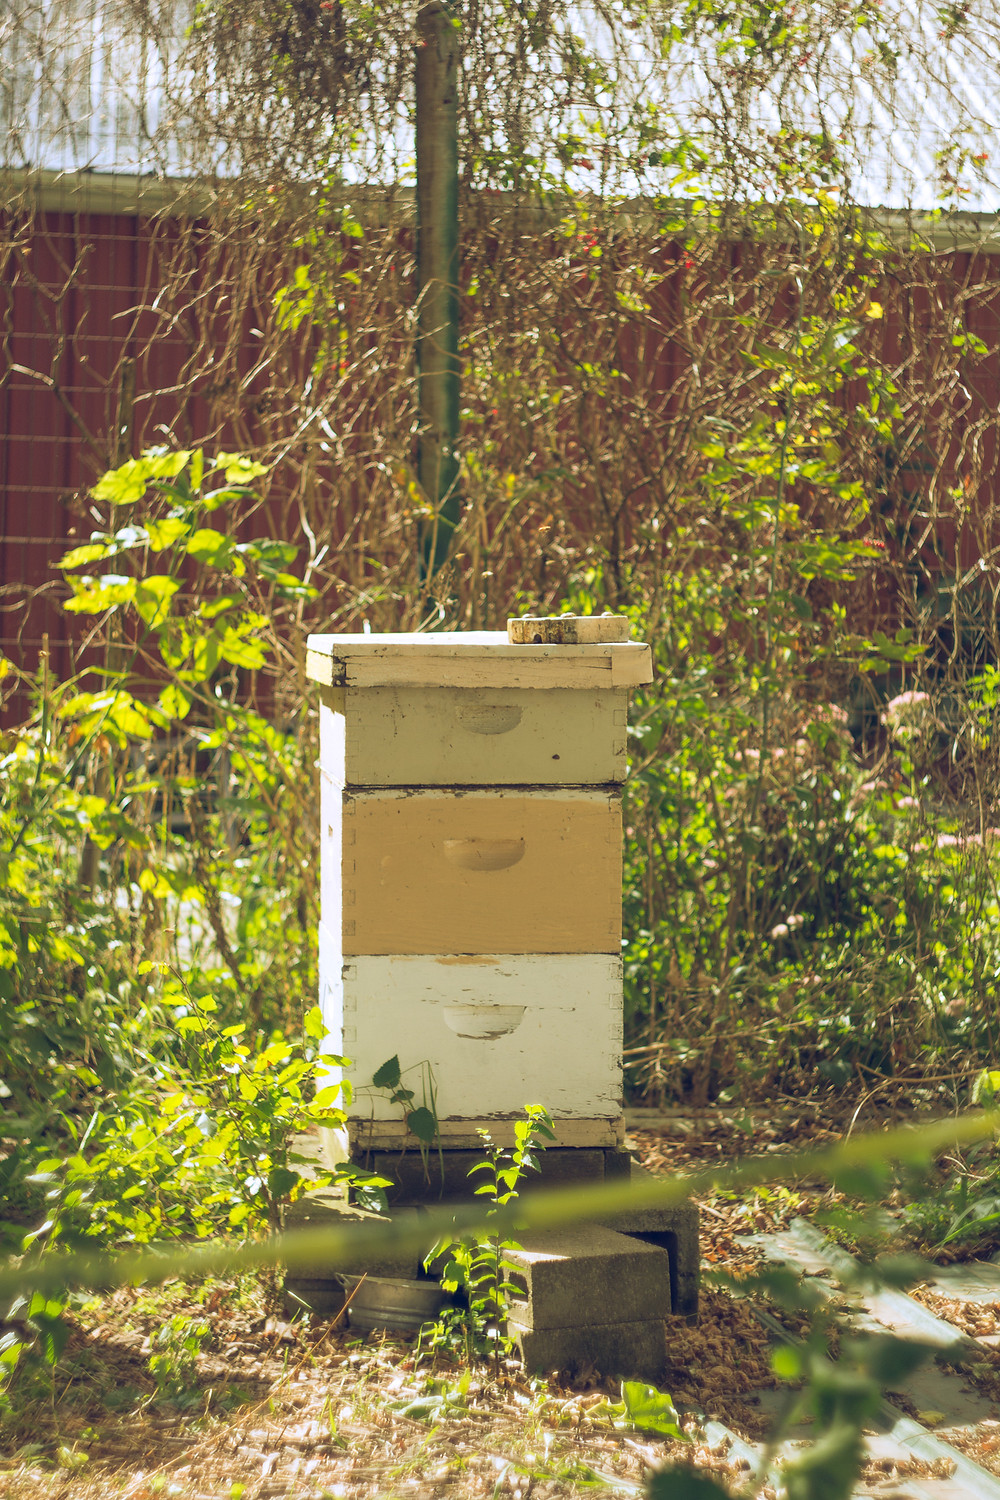 Honeybees living at the Homestead Orchard